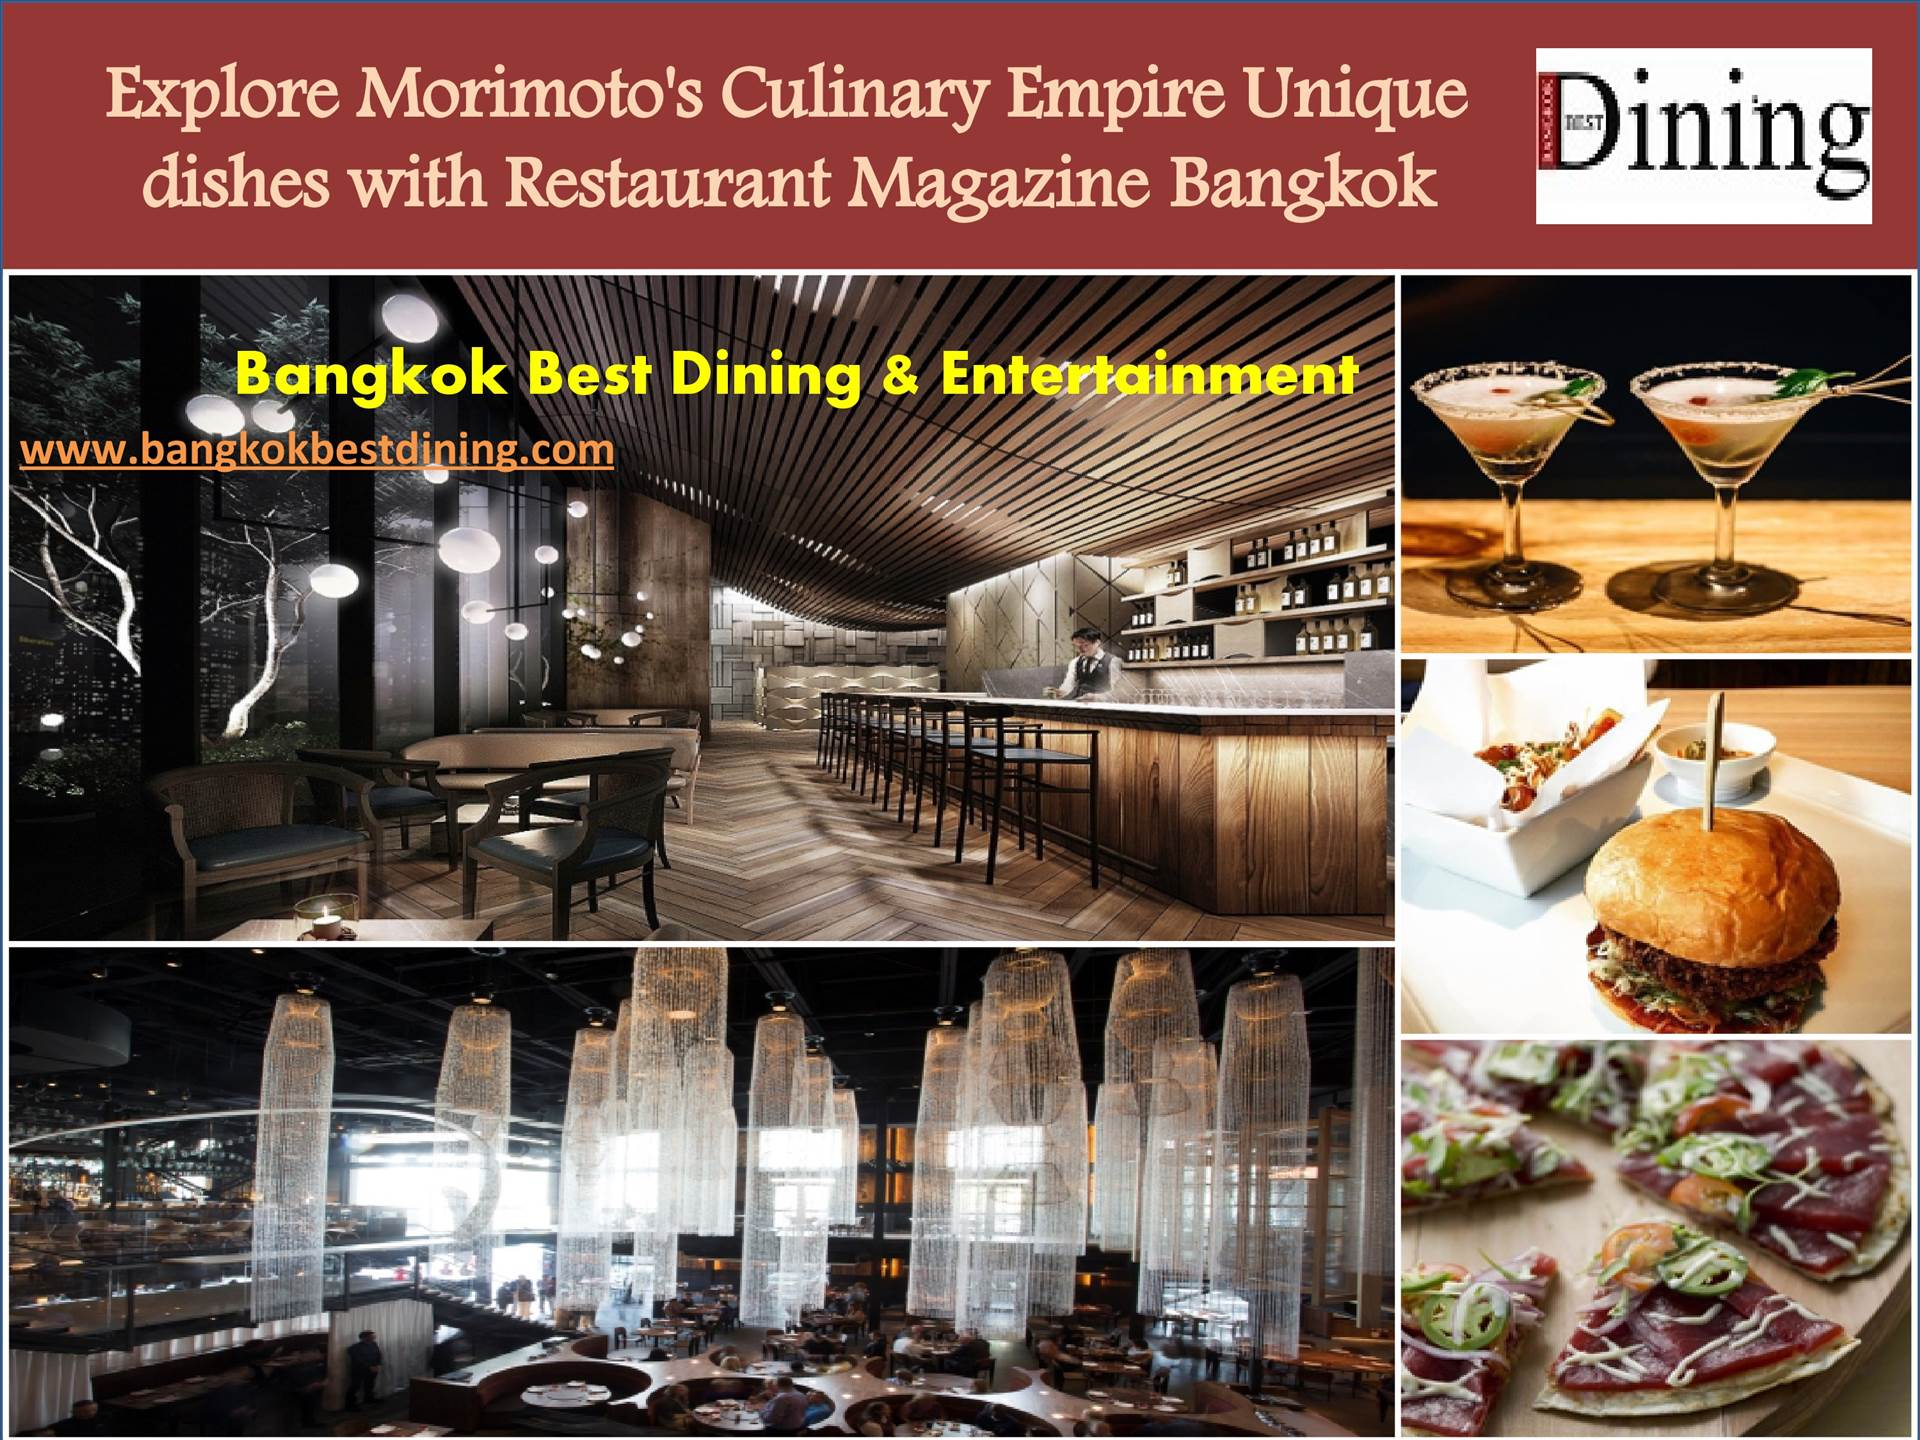 Explore Morimoto's Culinary Empire Unique dishes with Restaurant Magazine Bangkok  by bangkokbestdining